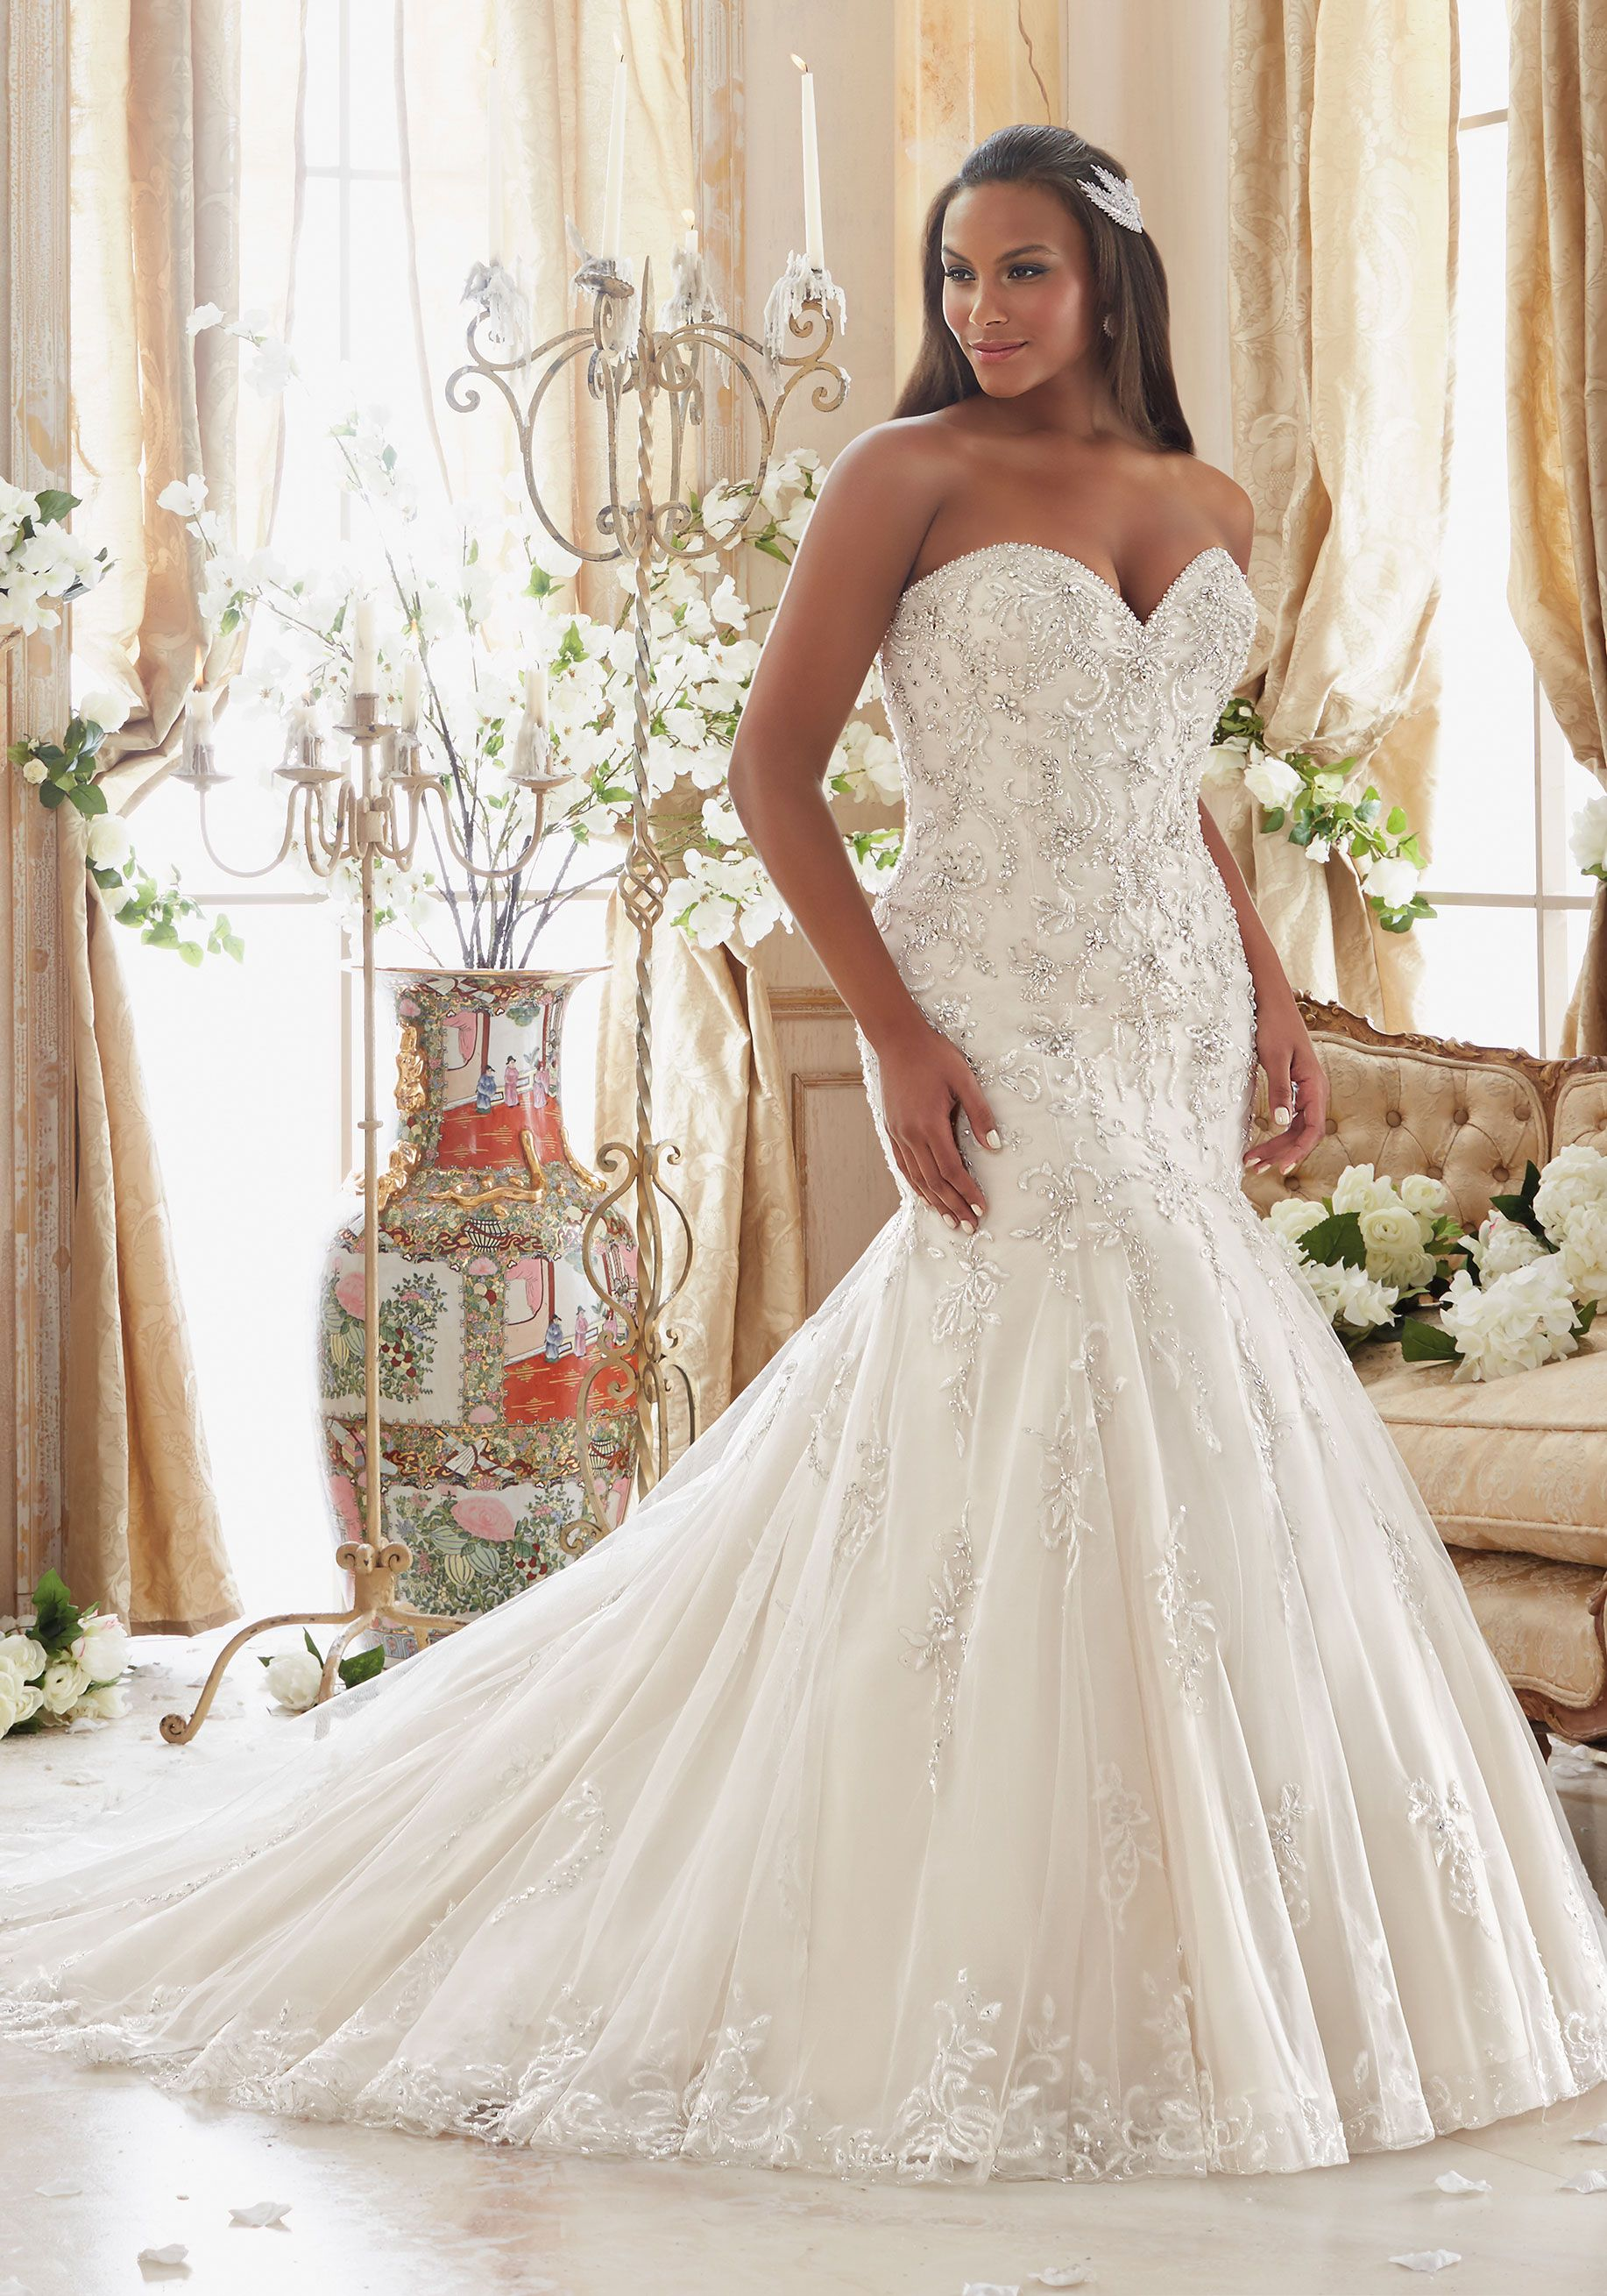 c15615163a1 Wedding Dresses and Bridal Gowns by Morilee designed by Madeline Gardner.  Crystallized Embroidery on Tulle with Scalloped Hemline Plus Size Wedding  Dress